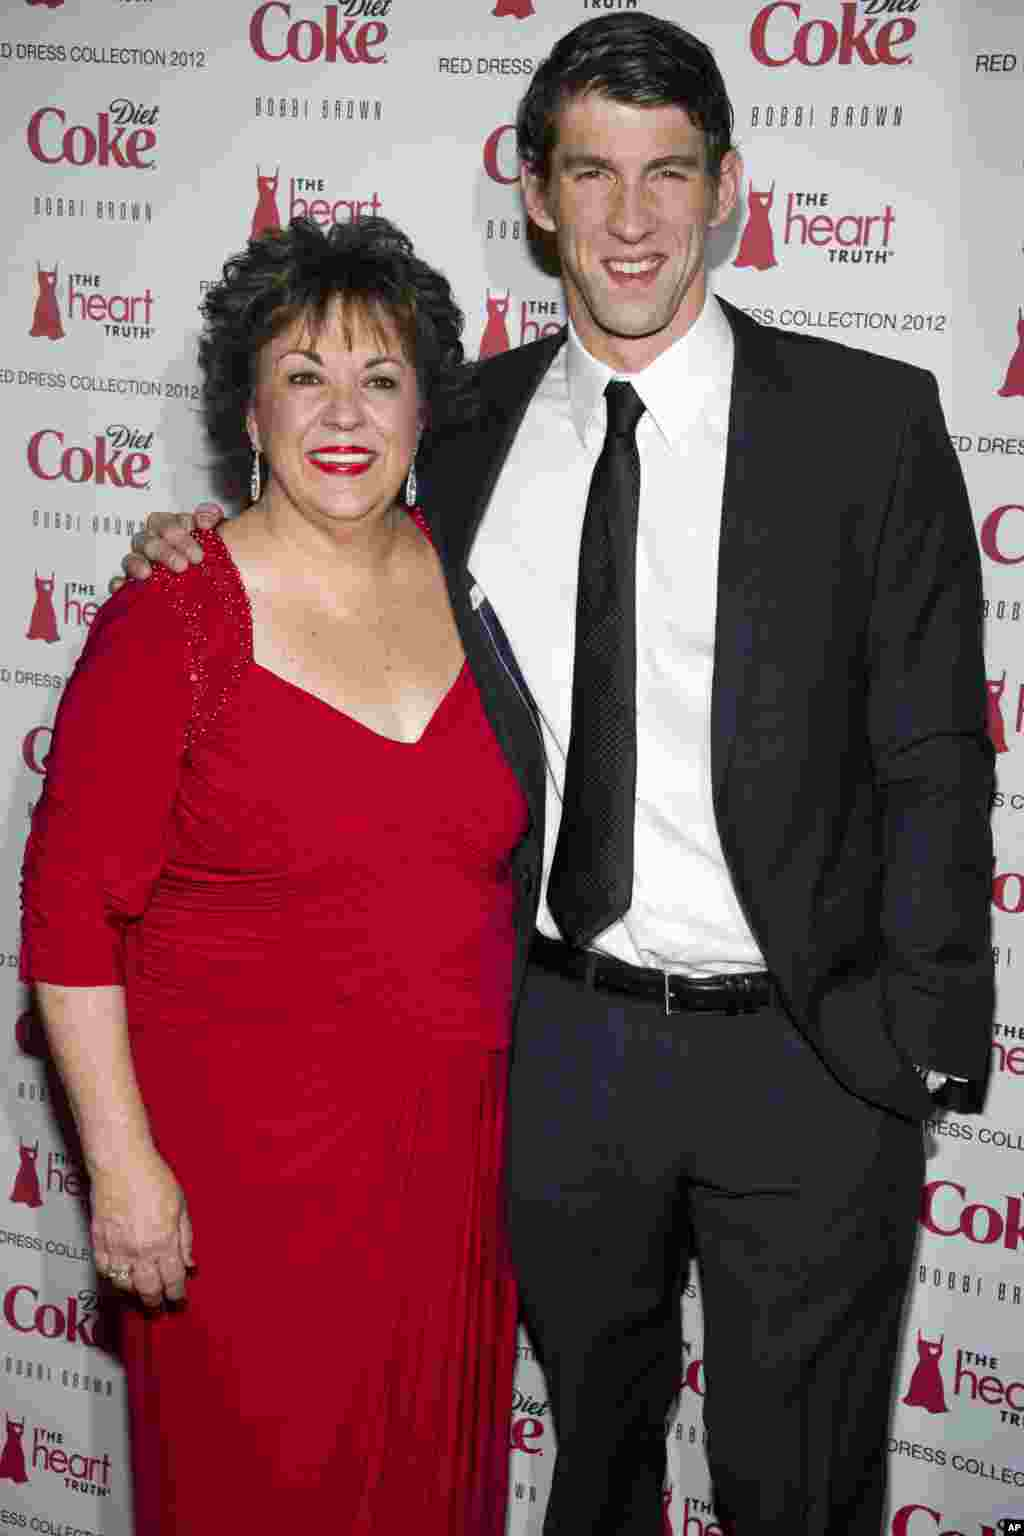 Michael Phelps and his mother Debbie Phelps attend the Heart Truth's Red Dress Collection during Fashion Week in New York, February 8, 2012.